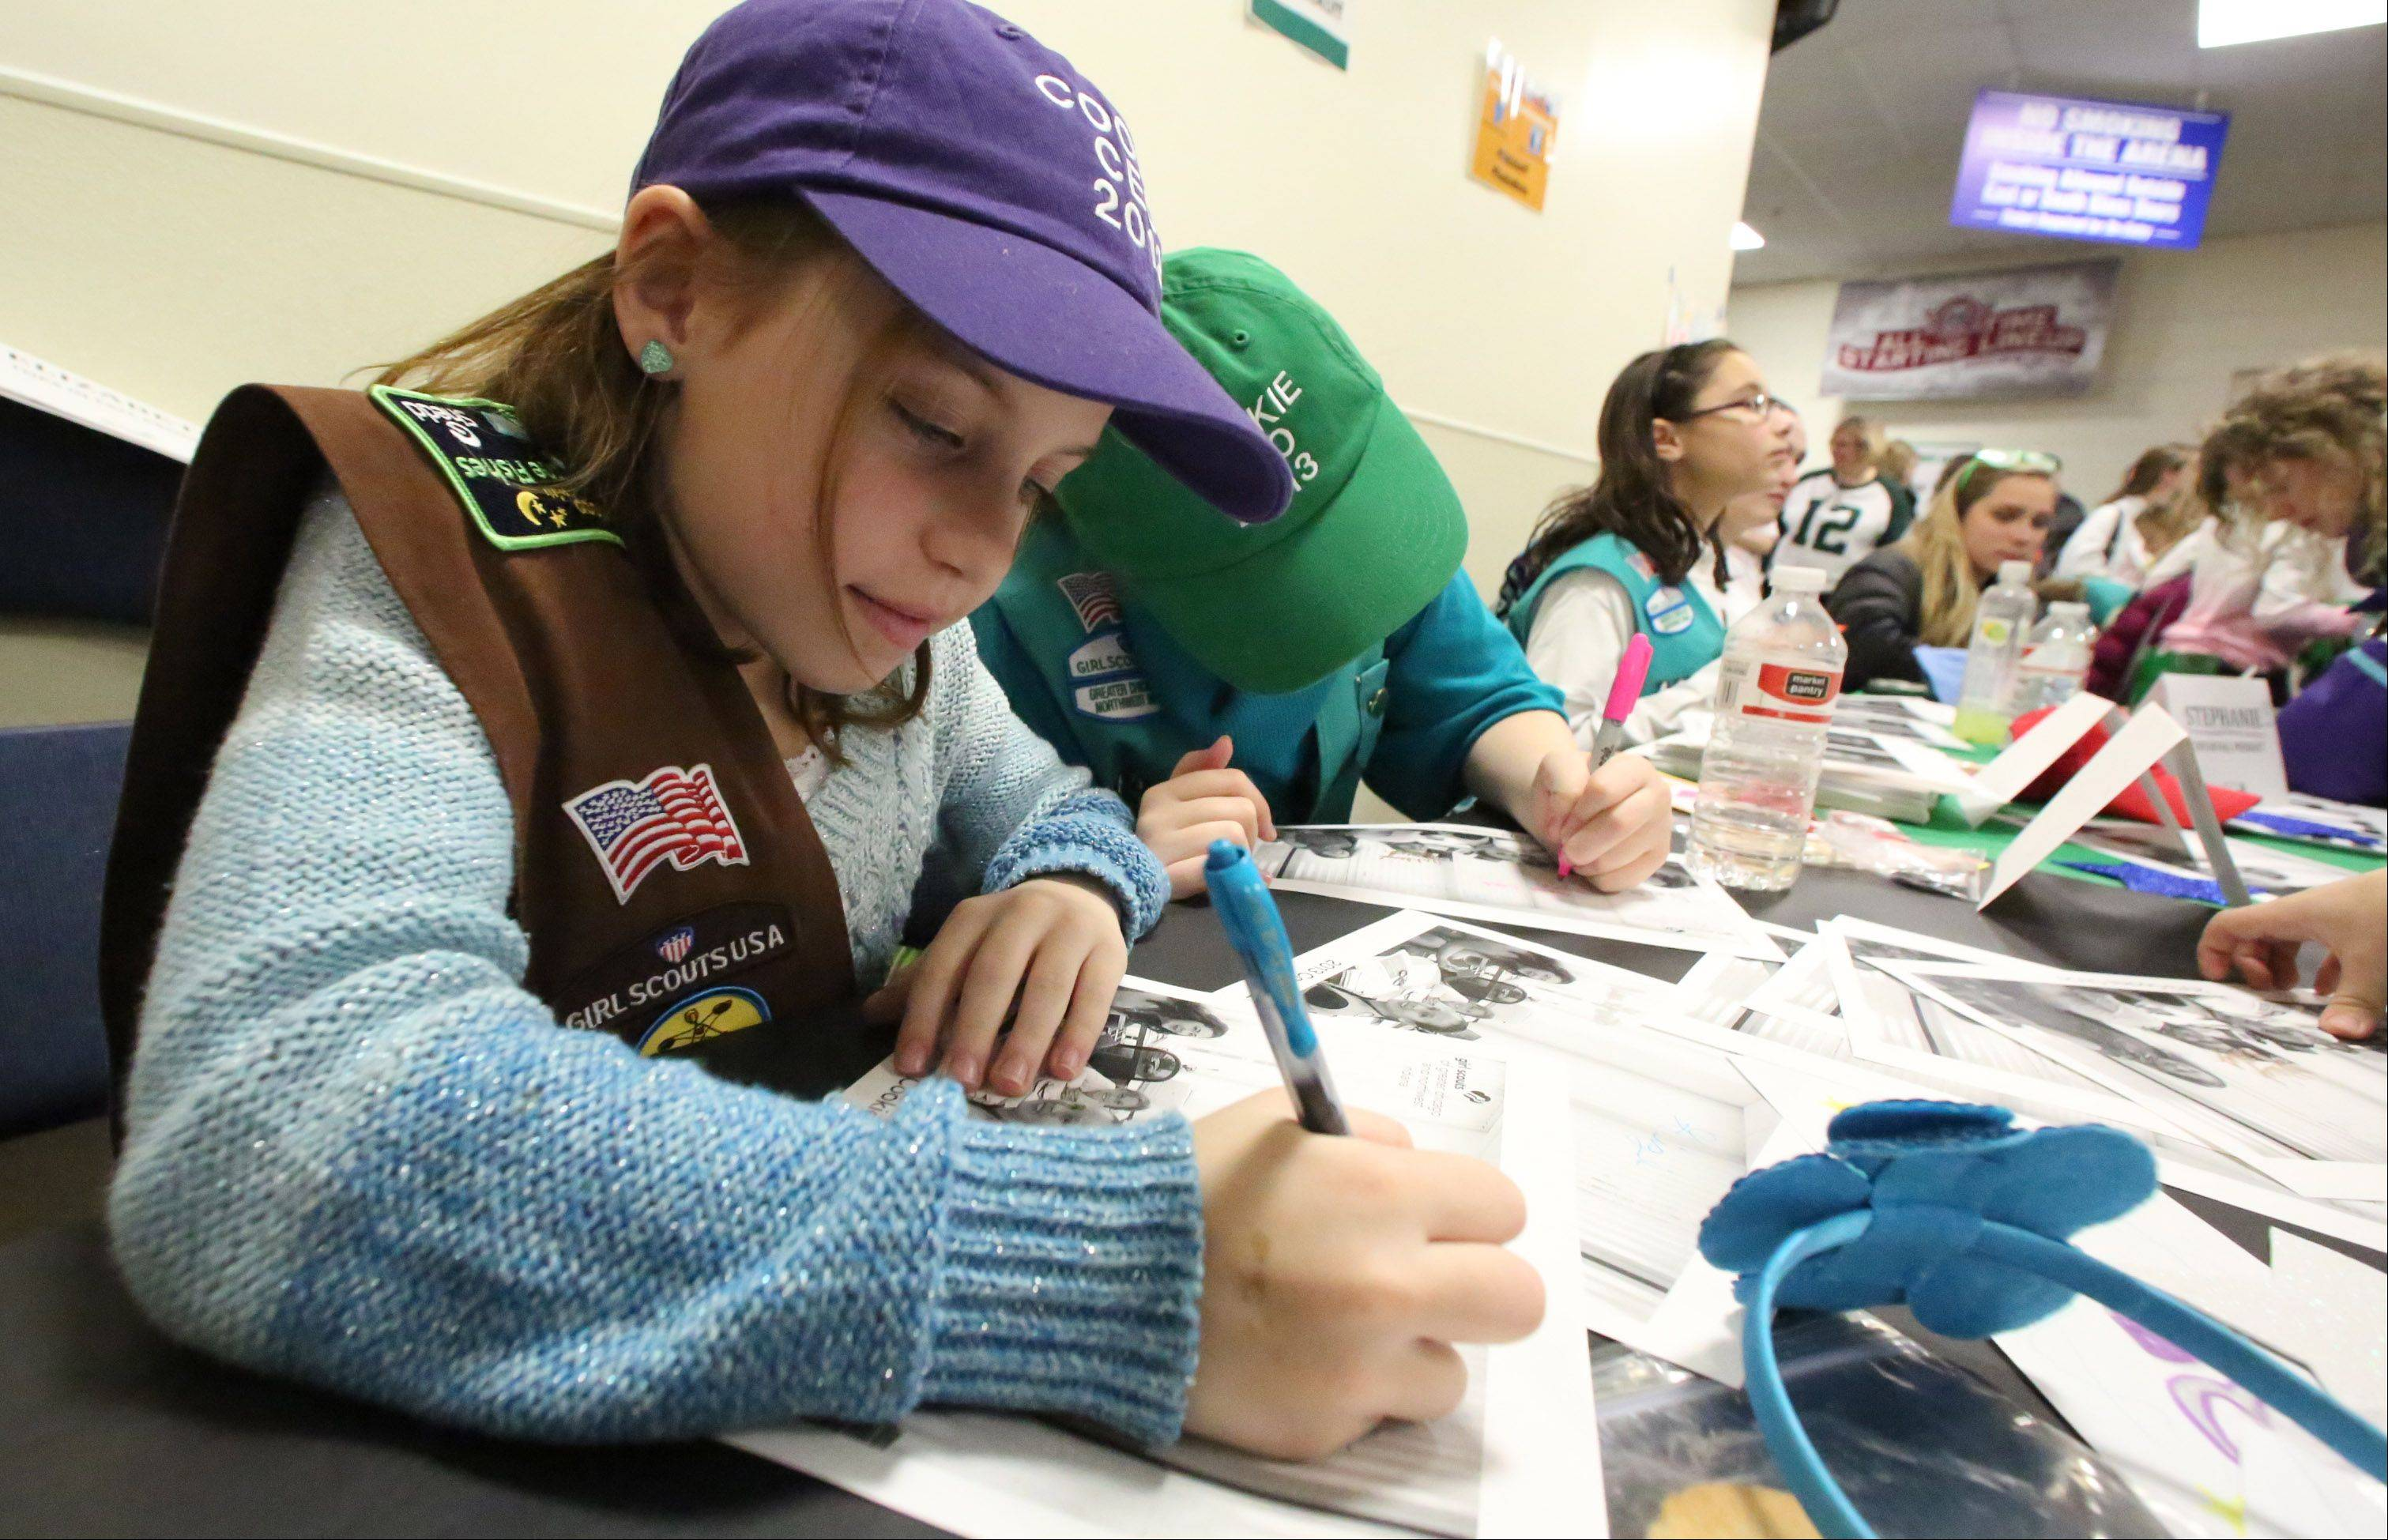 Gianna Girup, 9, of Wheaton, signs autographs at the fifth annual Girl Scouts Cookie Kickoff Rally. She earned the title of Chicago area Girl Scout cookie sales CEO for selling 2,434 boxes in 2013.